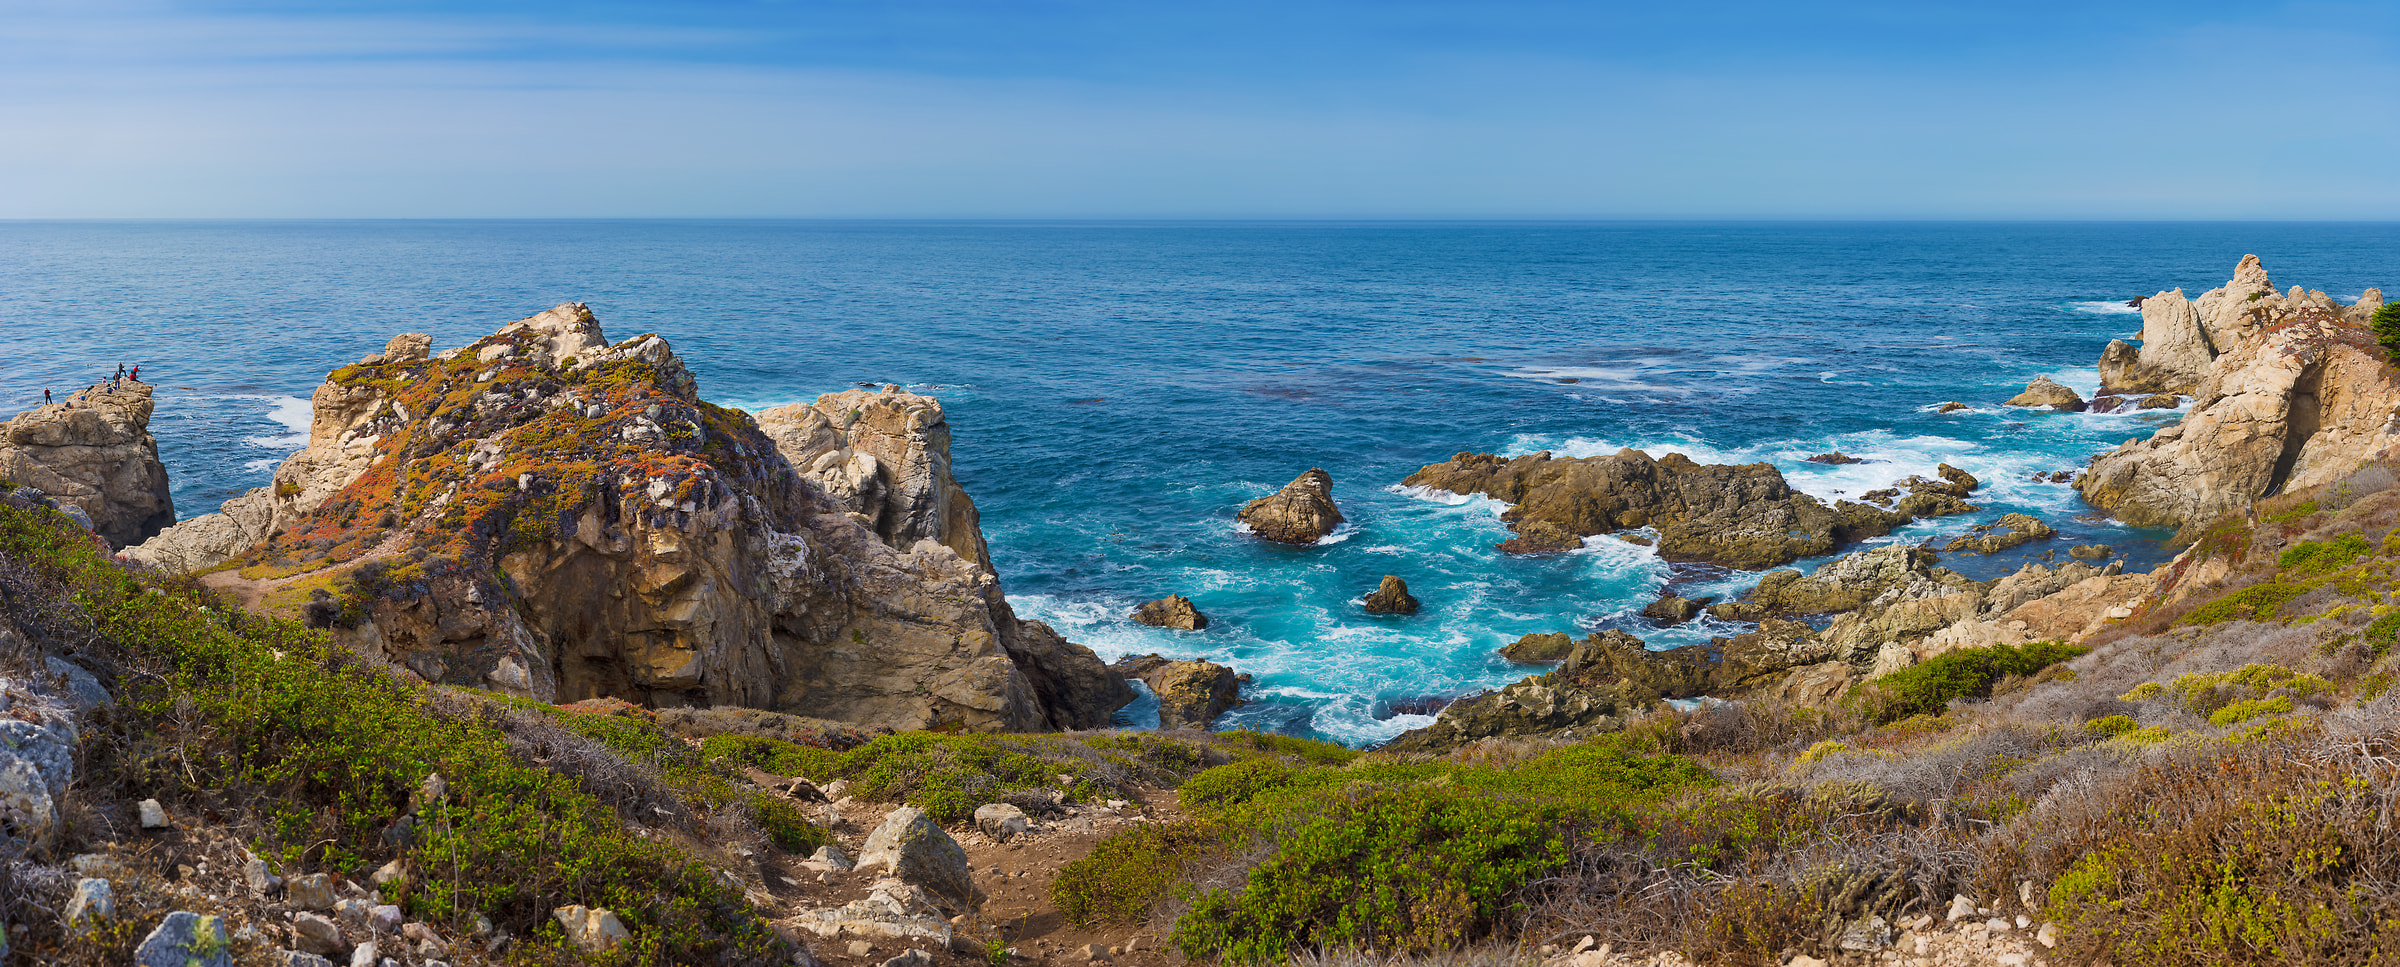 455 megapixels! A very high resolution, large-format VAST photo of an ocean coast; panorama photograph created by Jim Tarpo in Big Sur, California